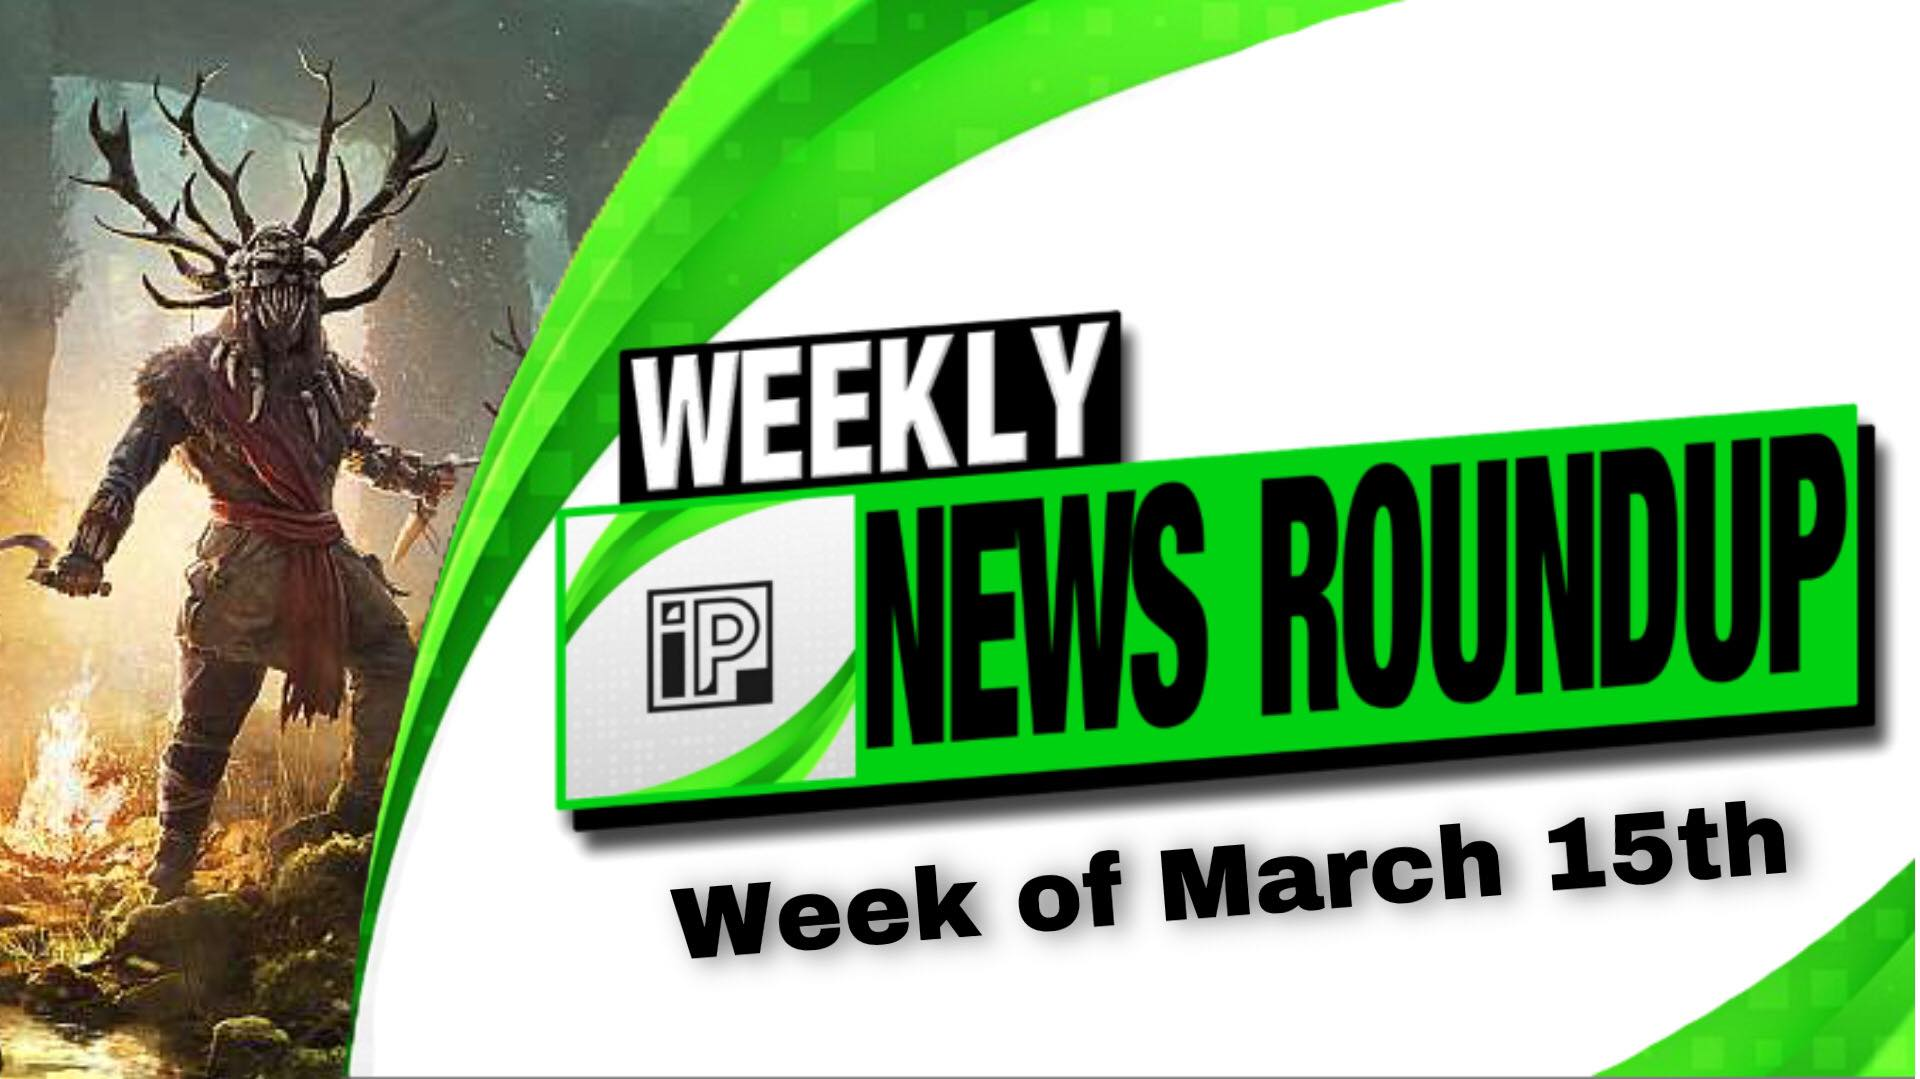 Weekly News Roundup – Week of March 15